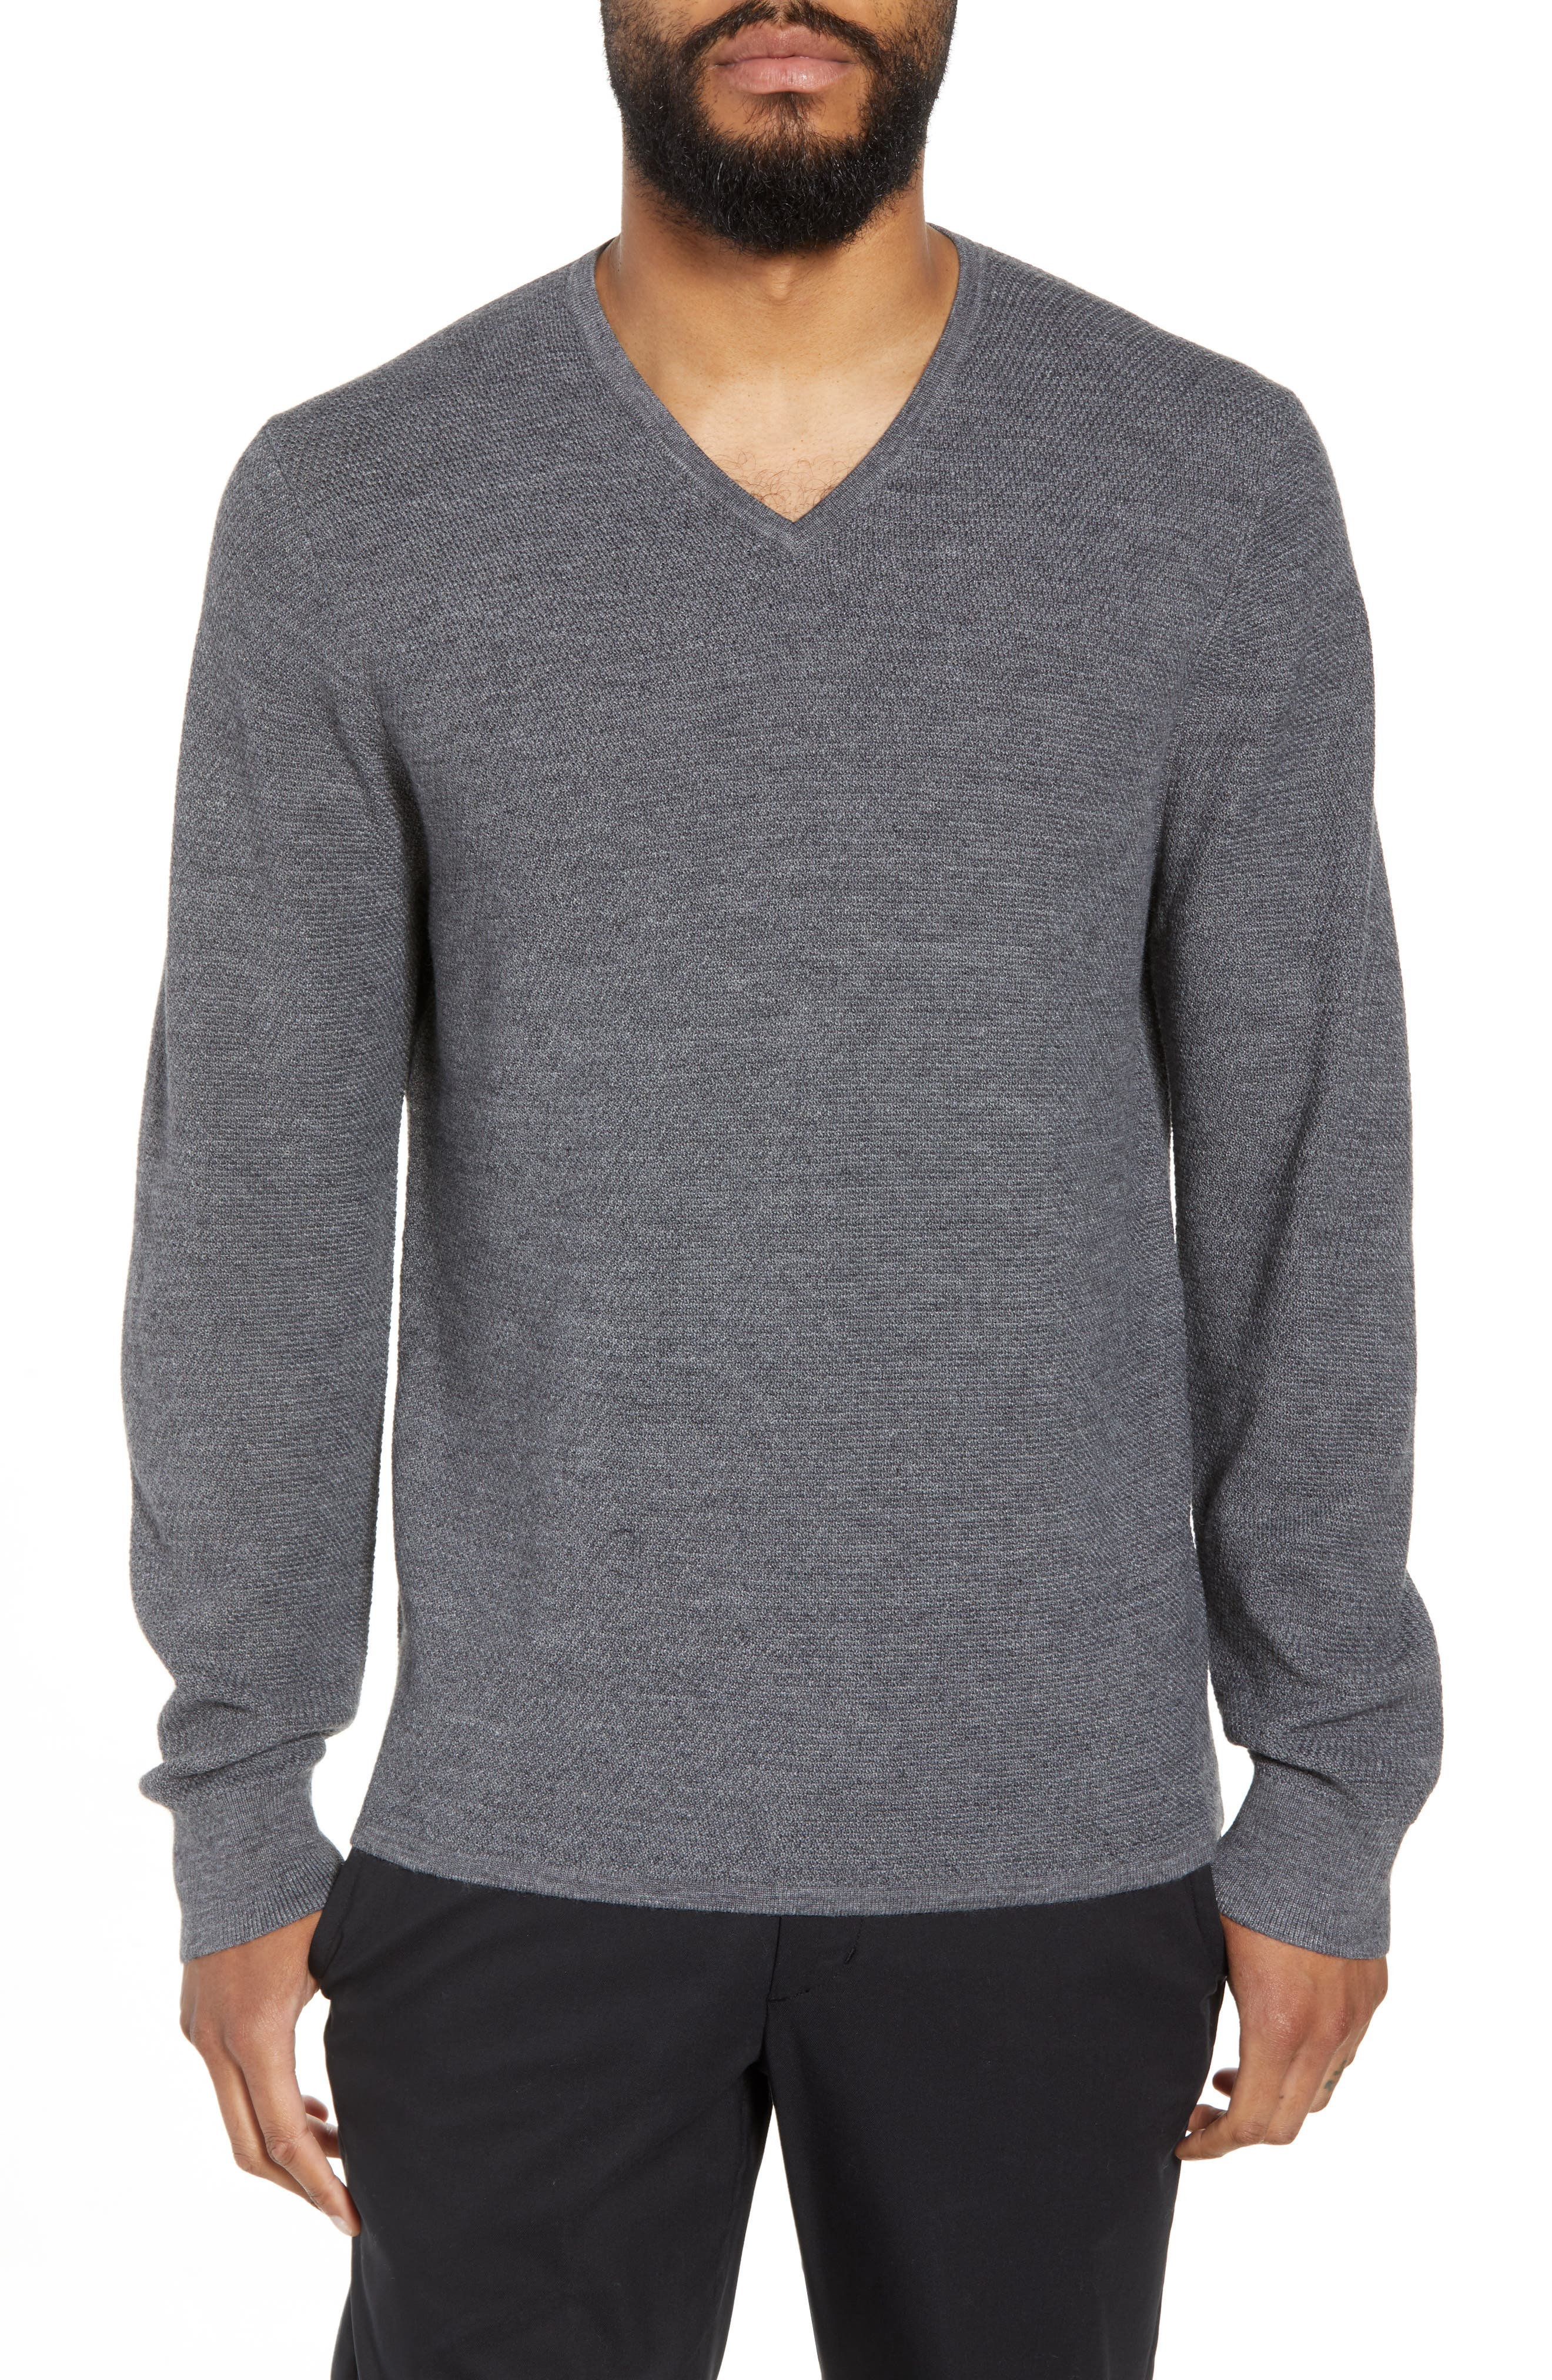 Calibrate V-Neck Wool Blend Sweater, Grey